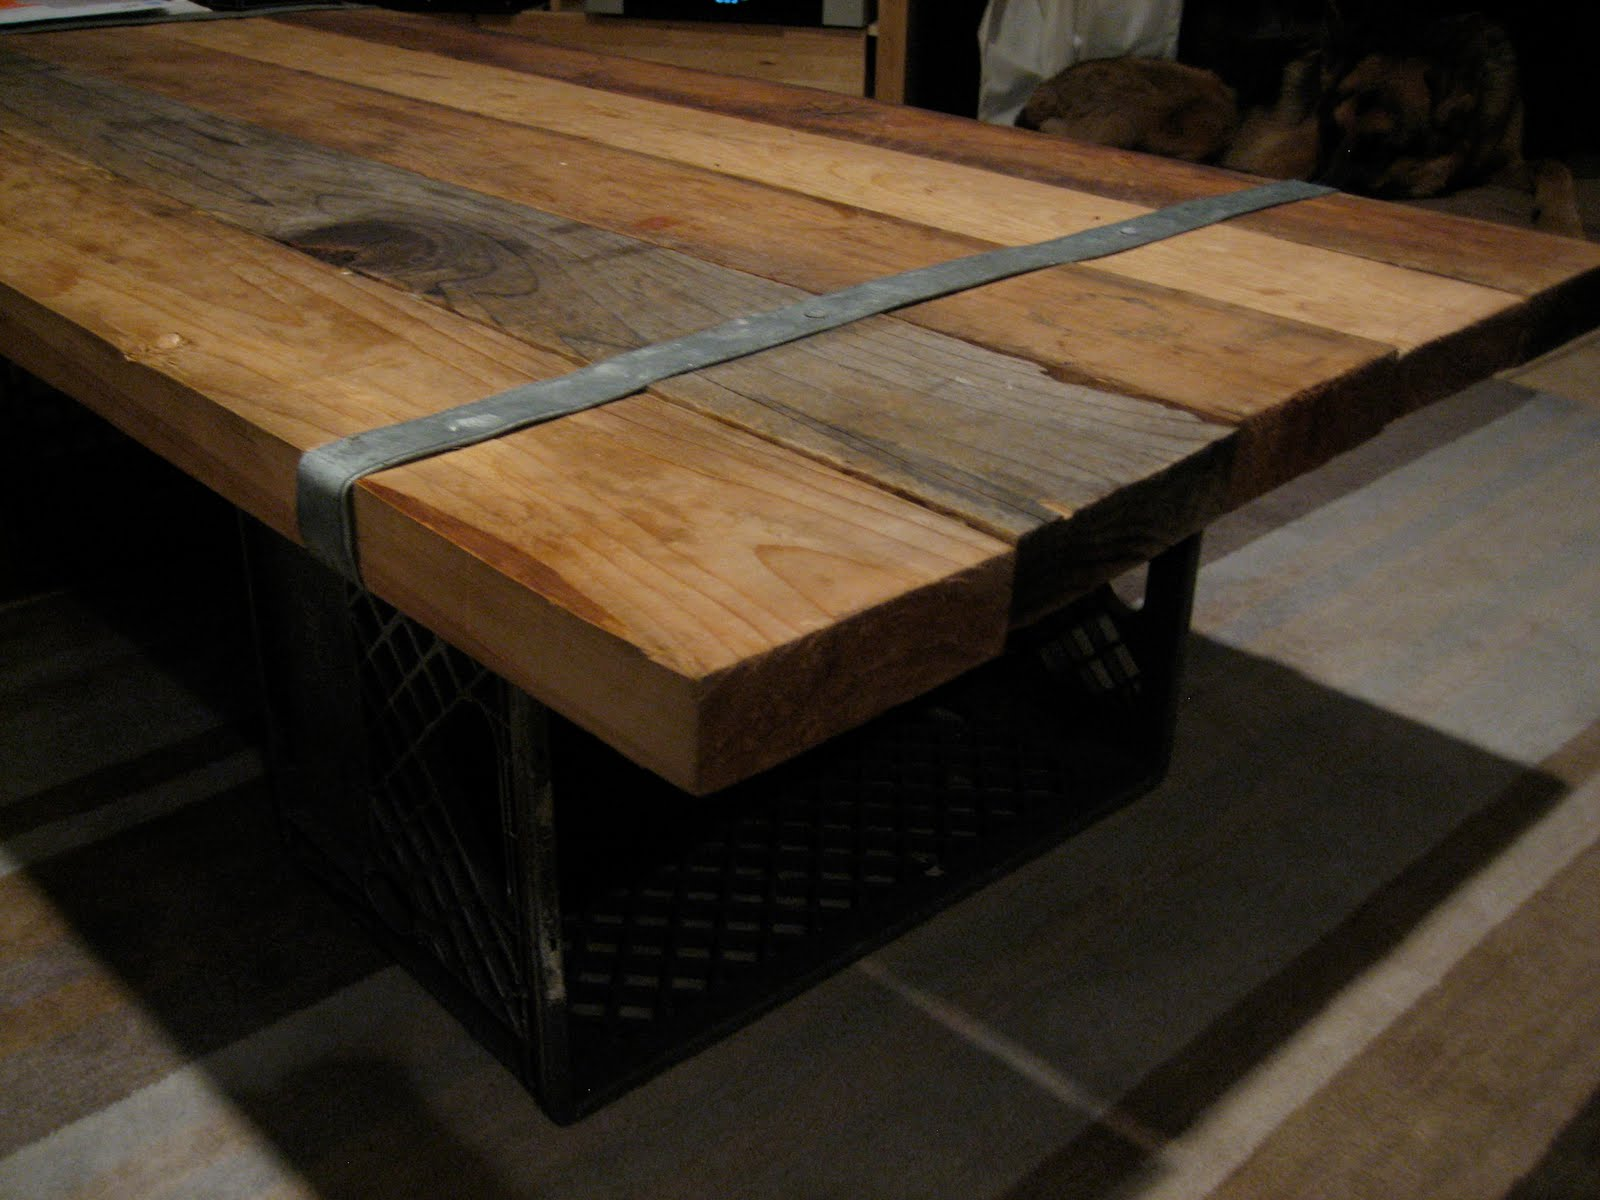 Homemade coffee table ideas photograph wood metal sc Homemade wooden furniture